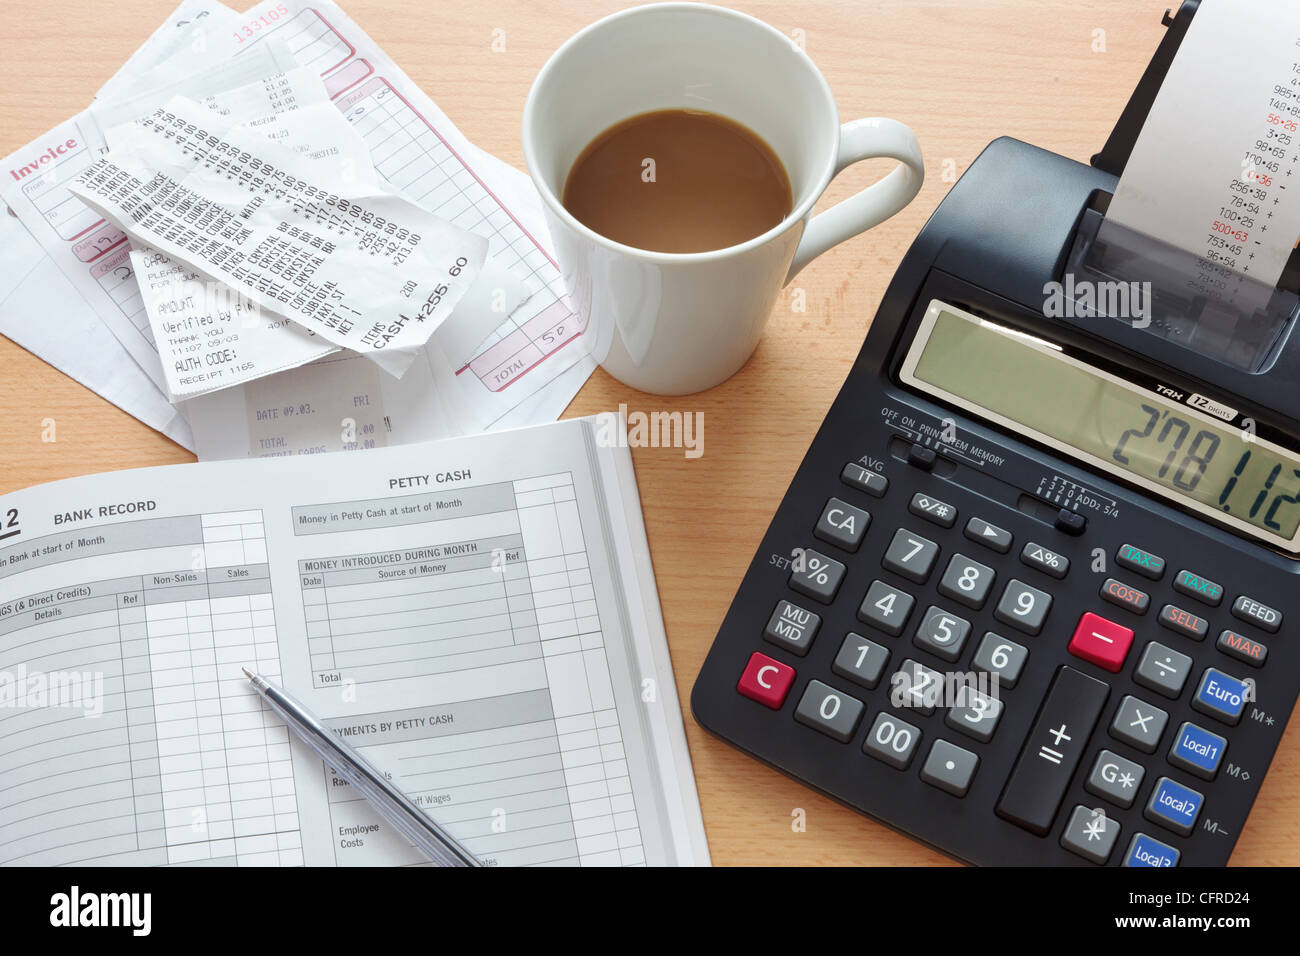 Still life bookkeeping photo of a sales ledger with a pile of receipts, invoices and a print calculator. - Stock Image